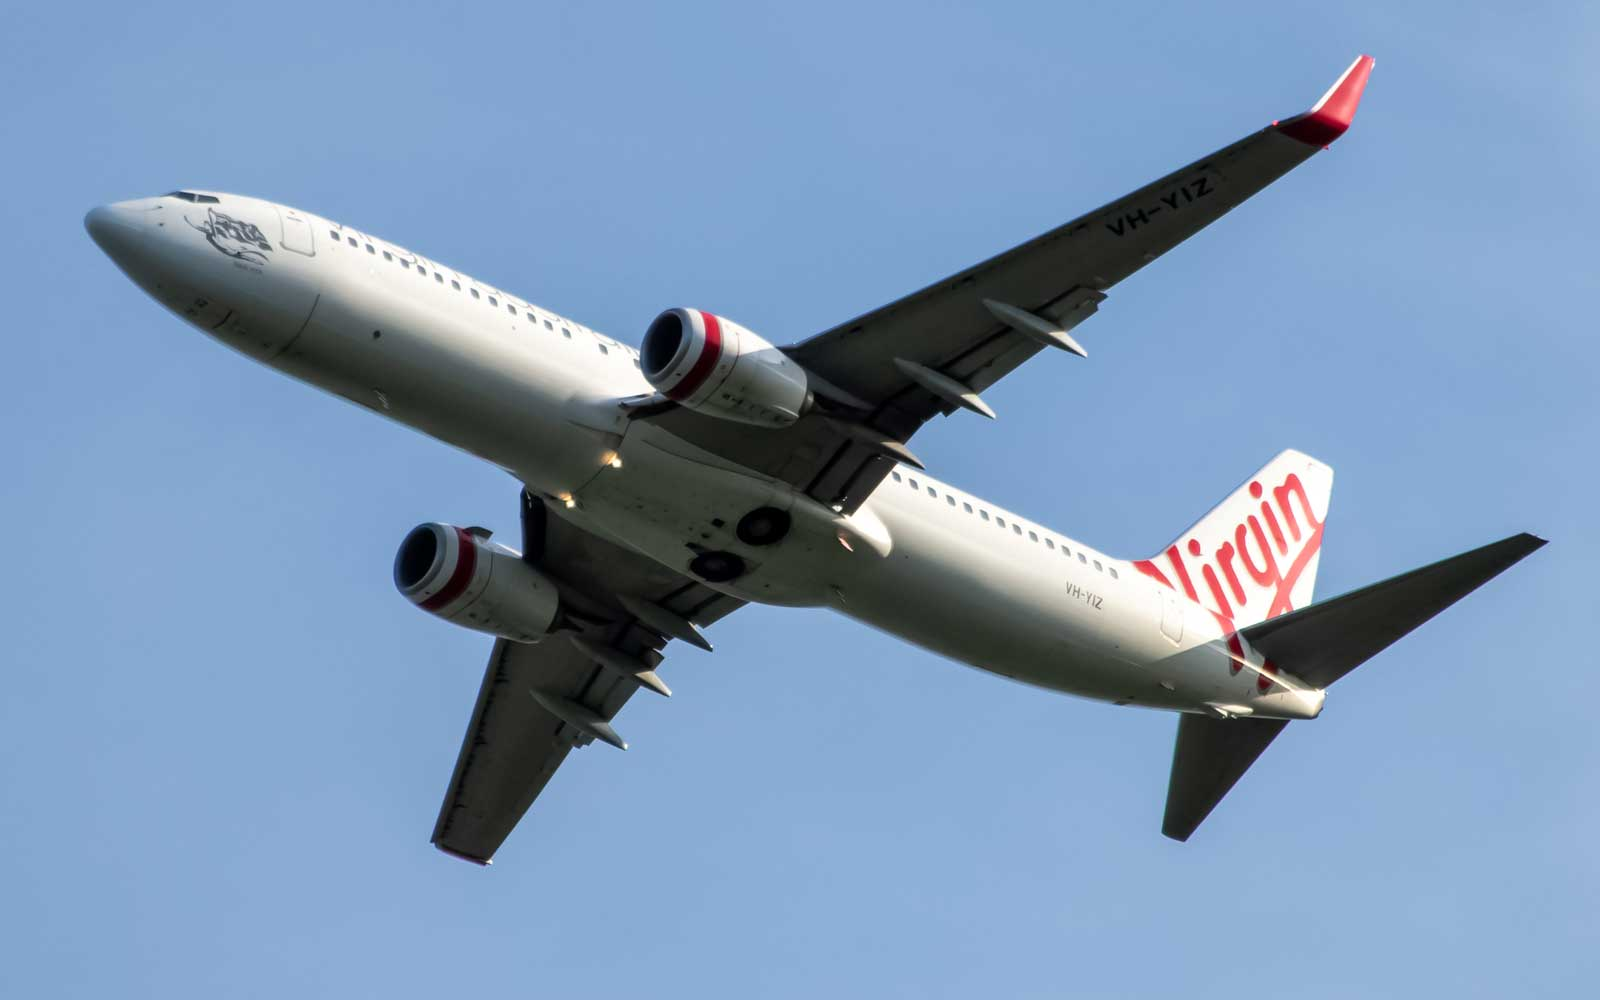 Virgin Australia giving away free flights for Christmas